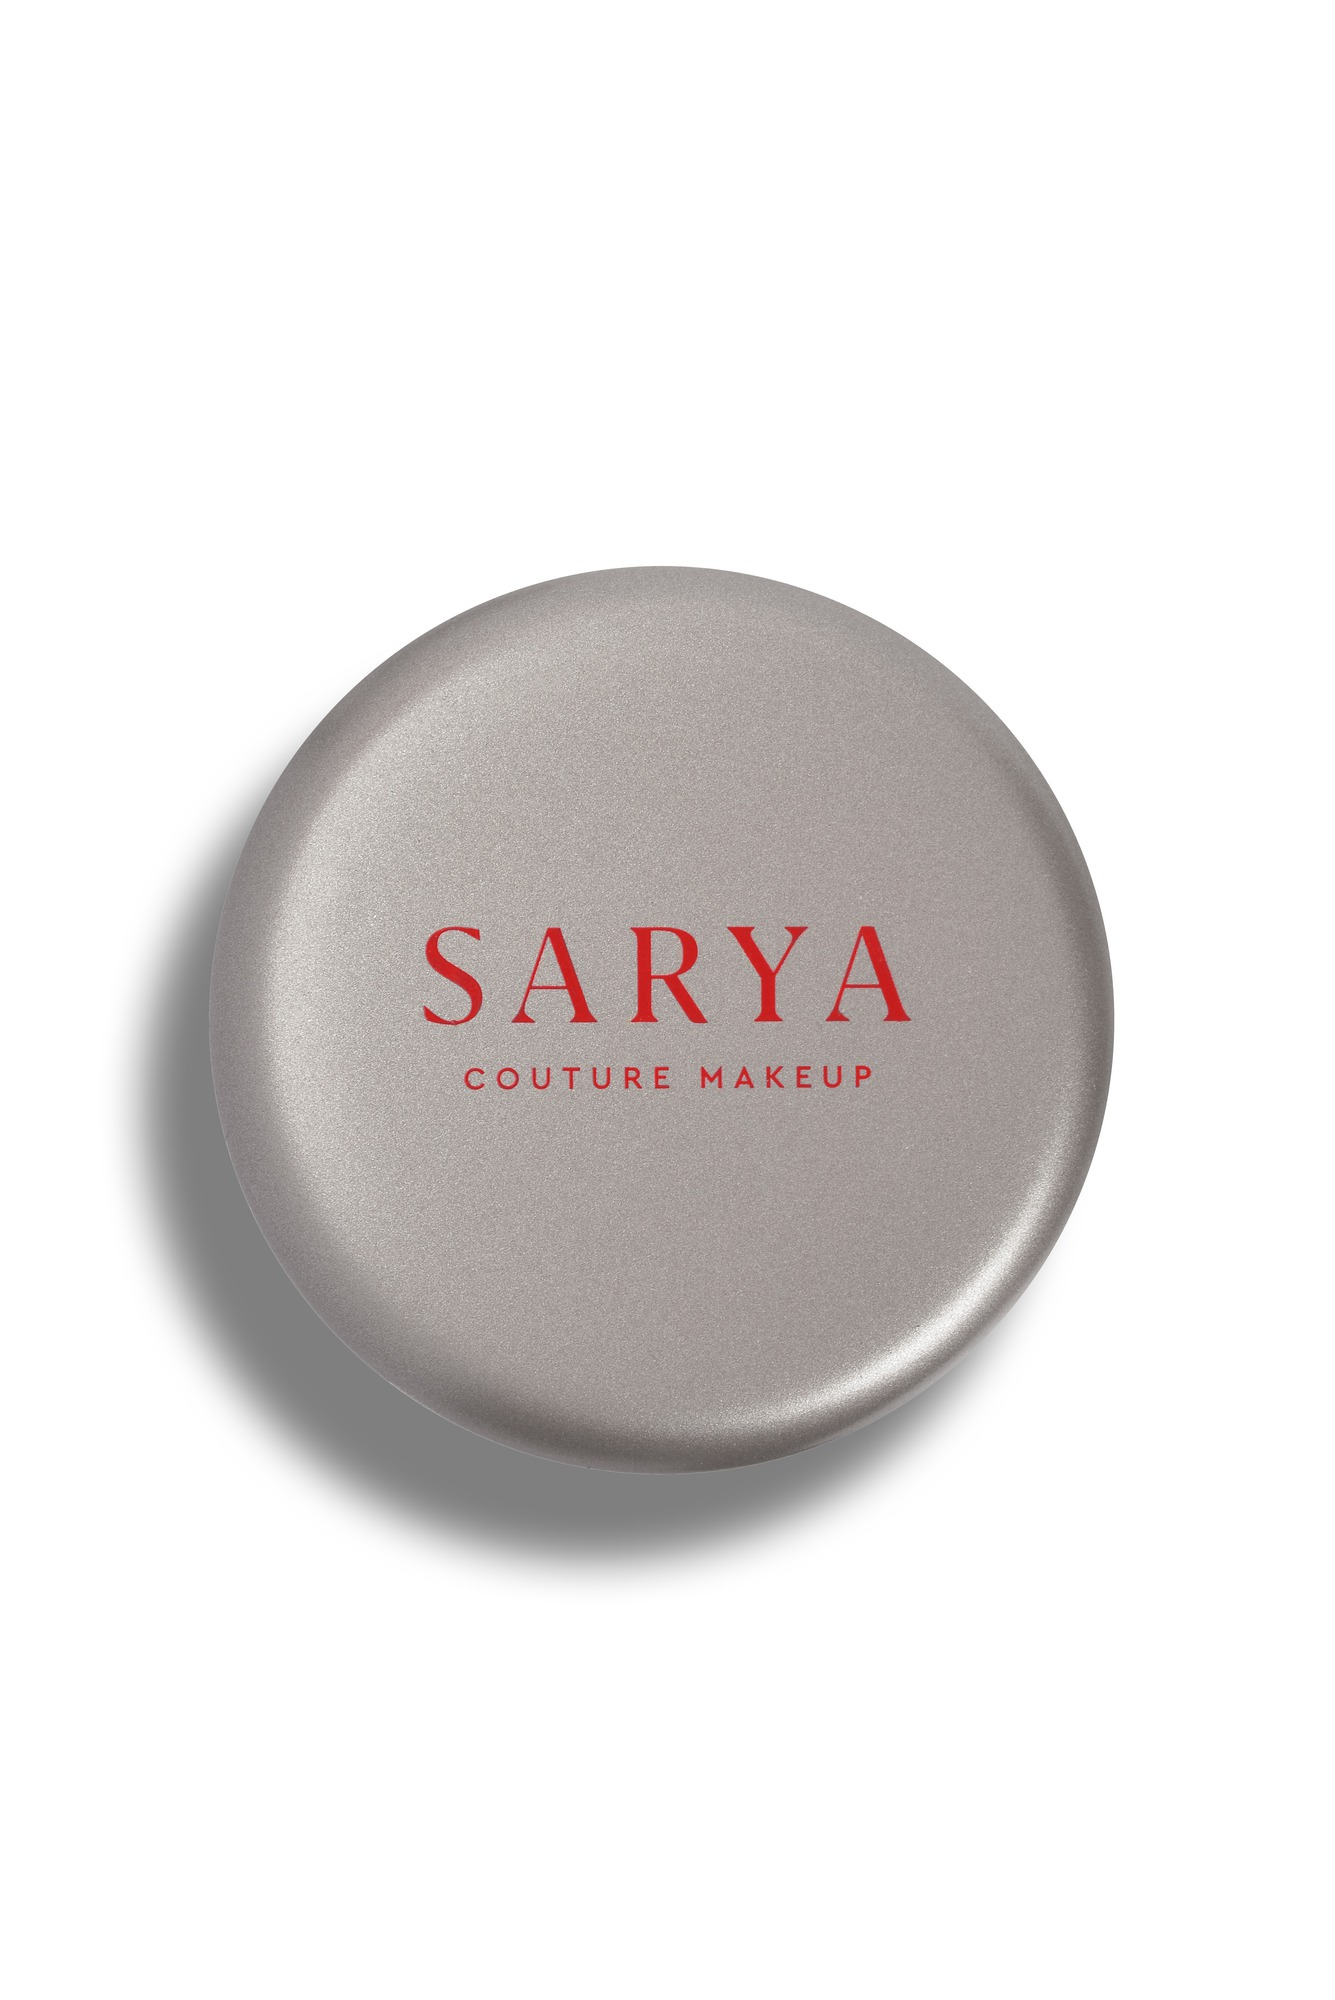 Sarya Couture Makeup